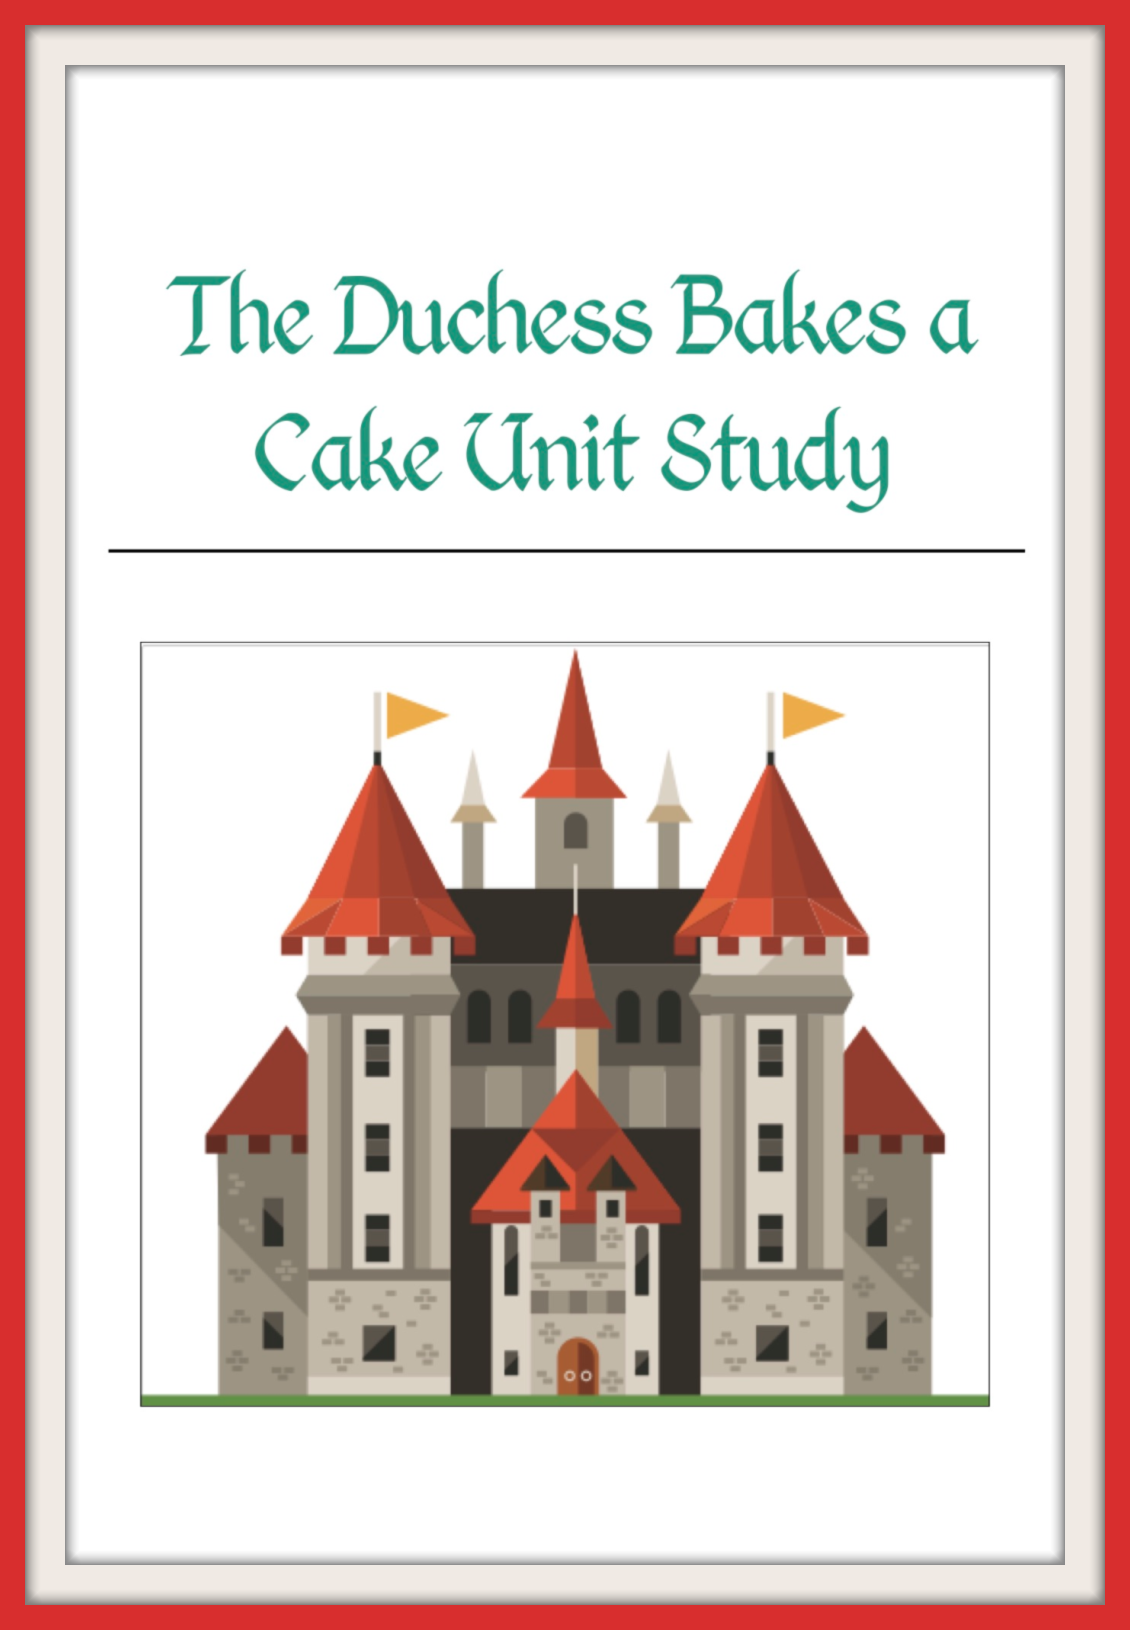 The Duchess Bakes A Cake Worksheets In